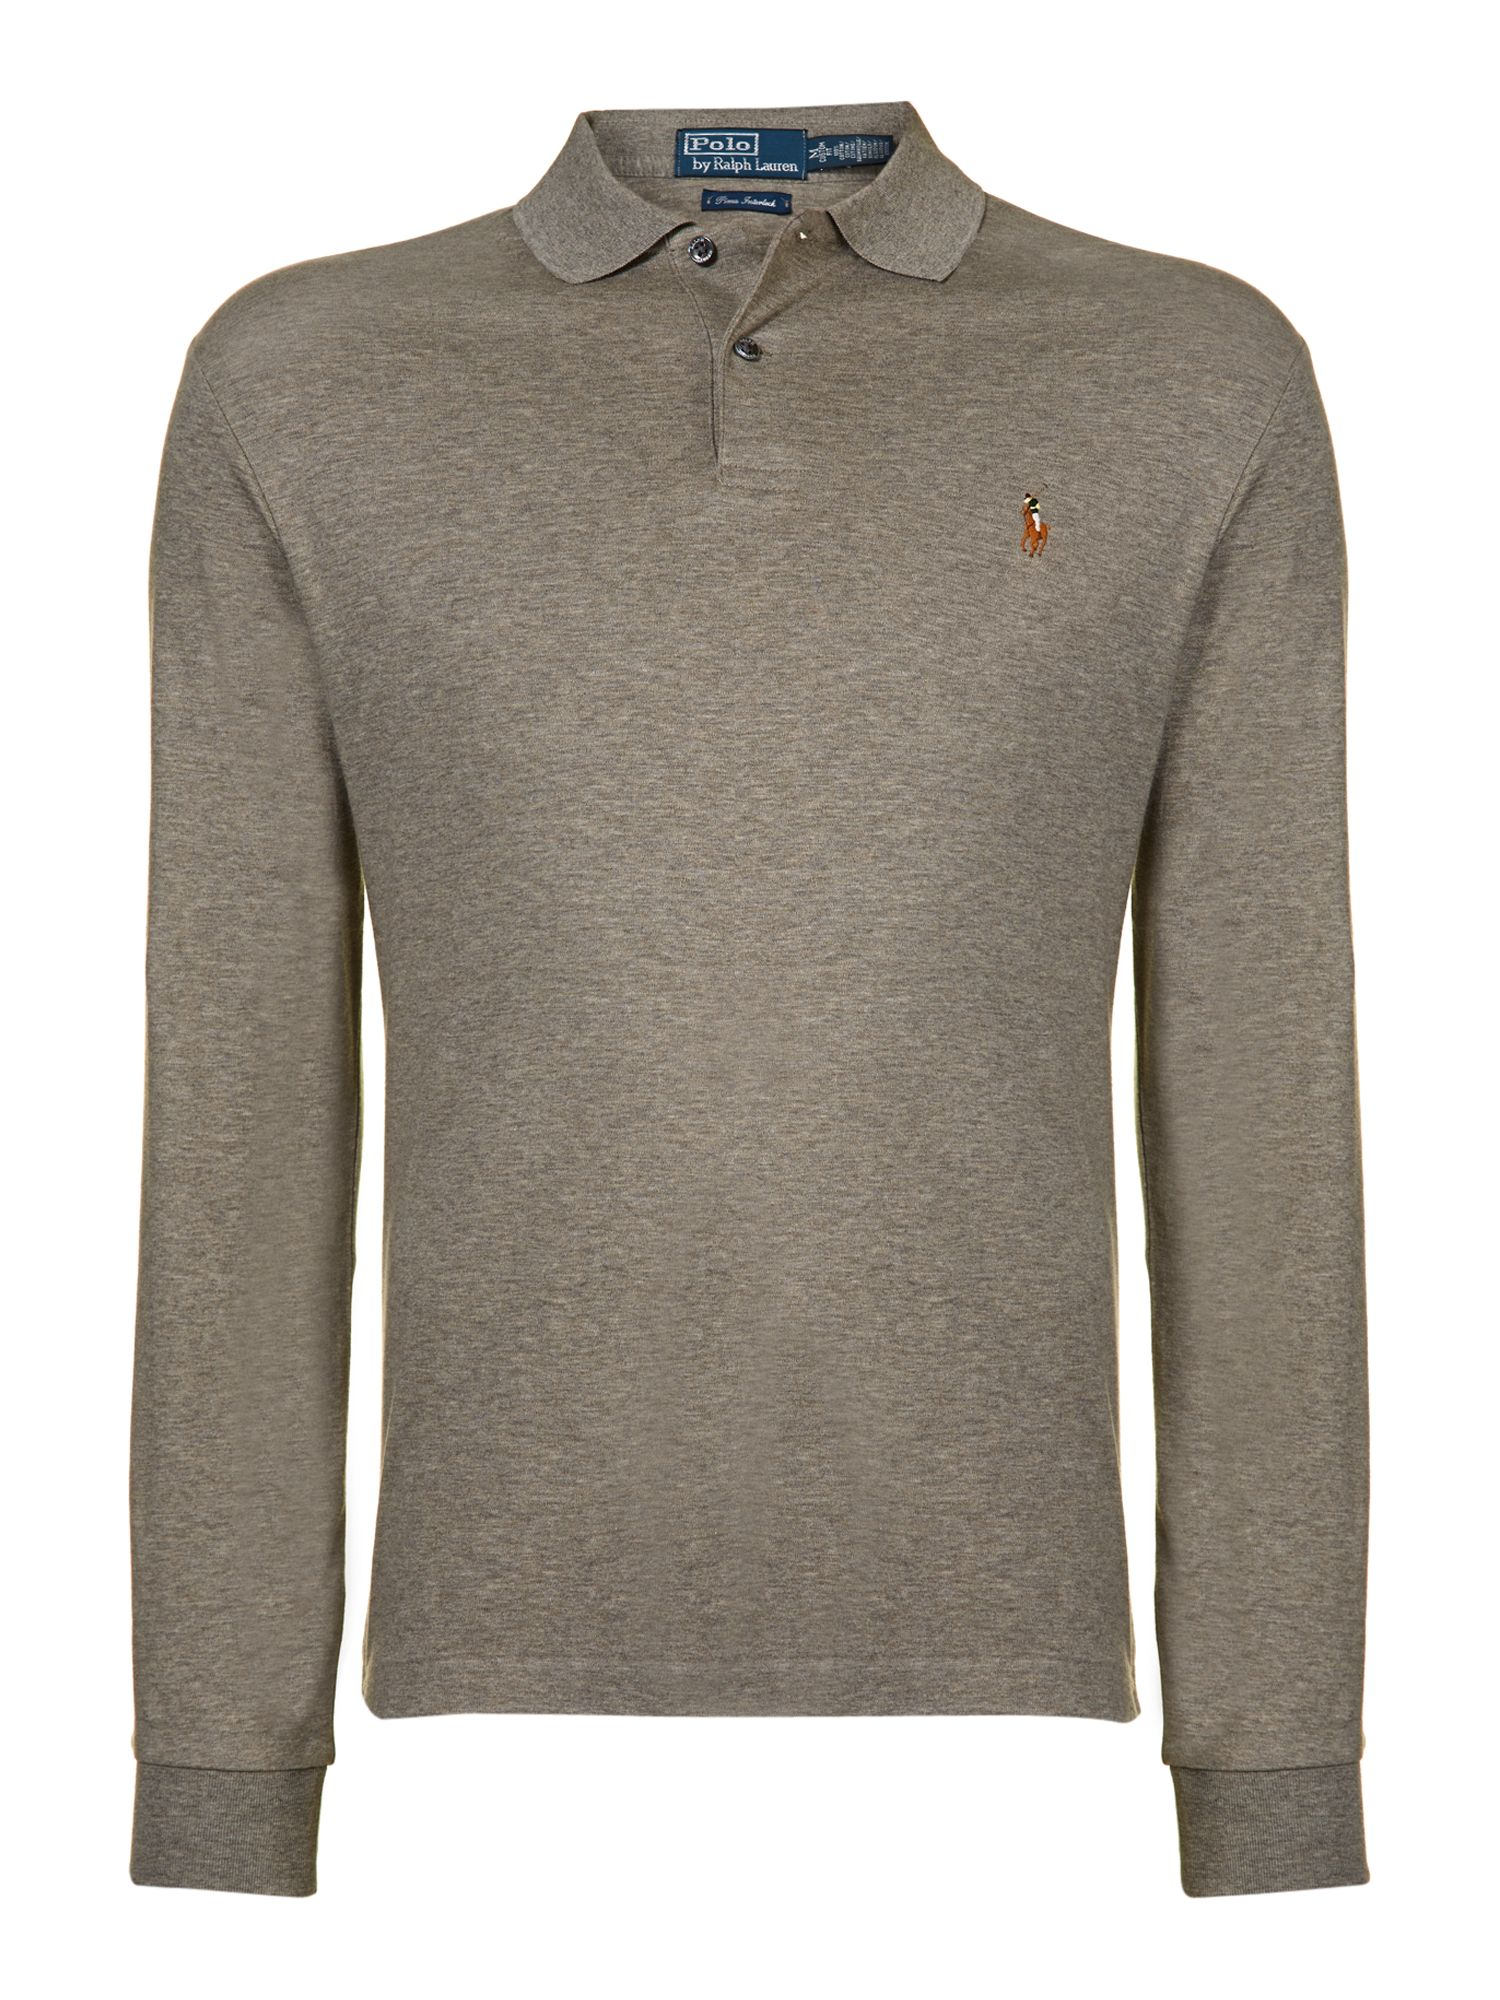 Classic long sleeve custom fit prima cotton polo